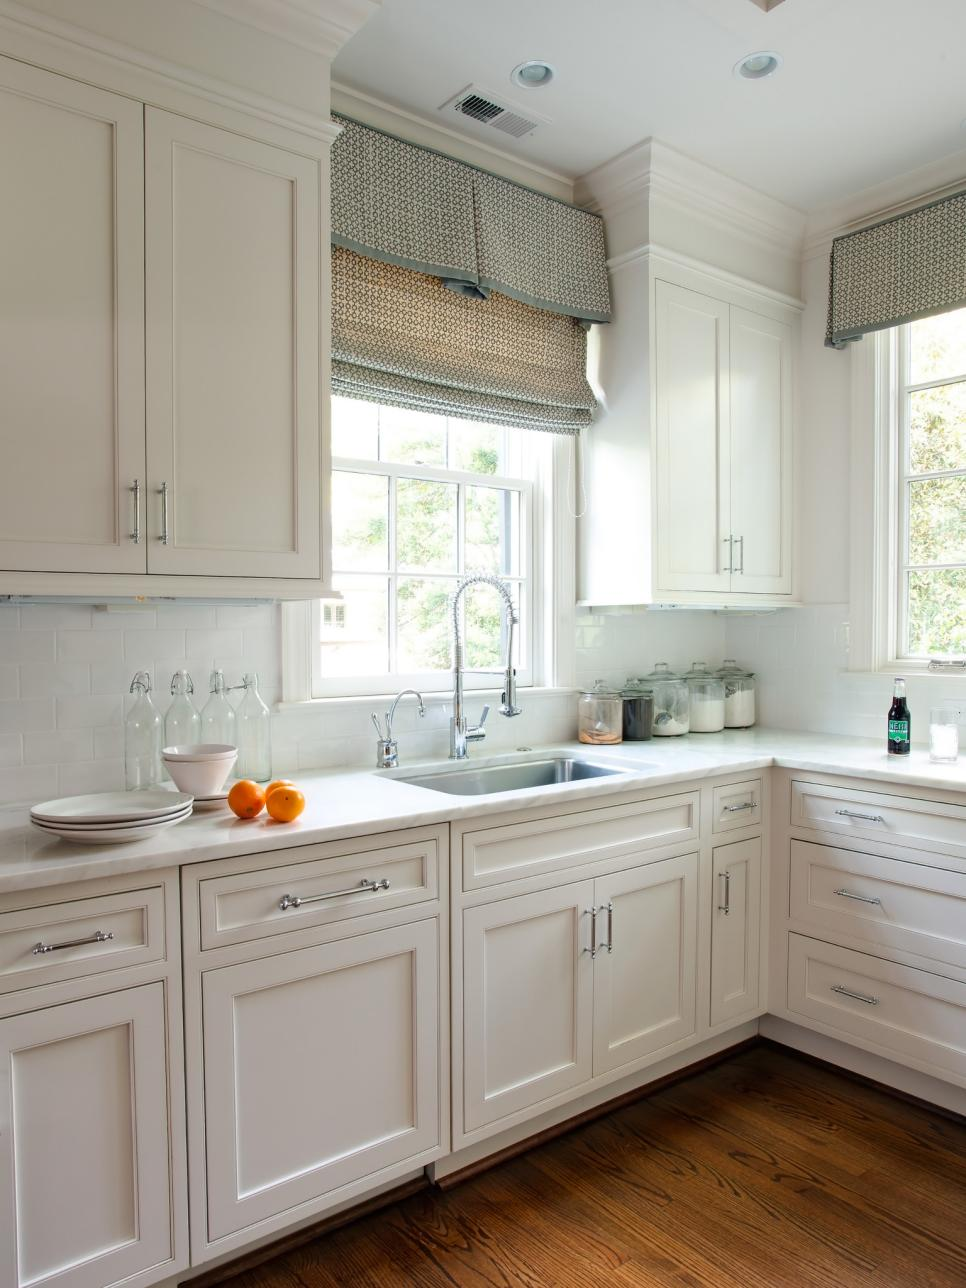 Roman Blinds For Kitchens 10 Stylish Kitchen Window Treatment Ideas Hgtv